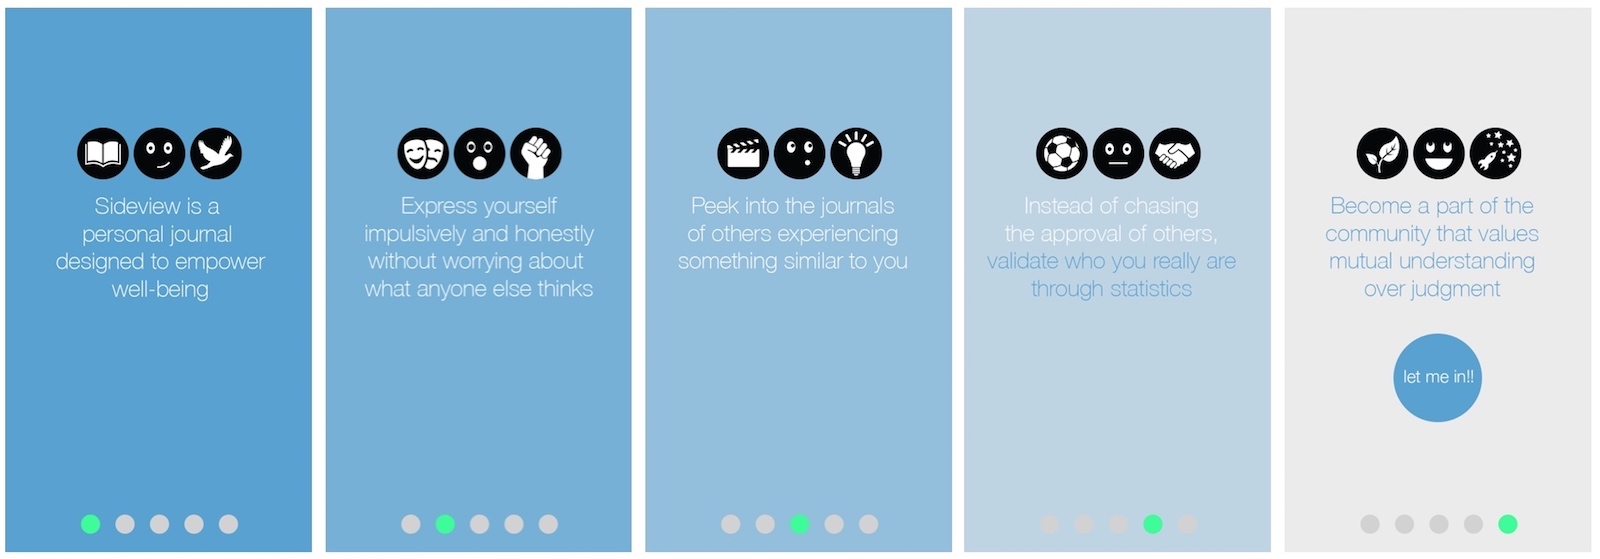 Sideview app introduction screens